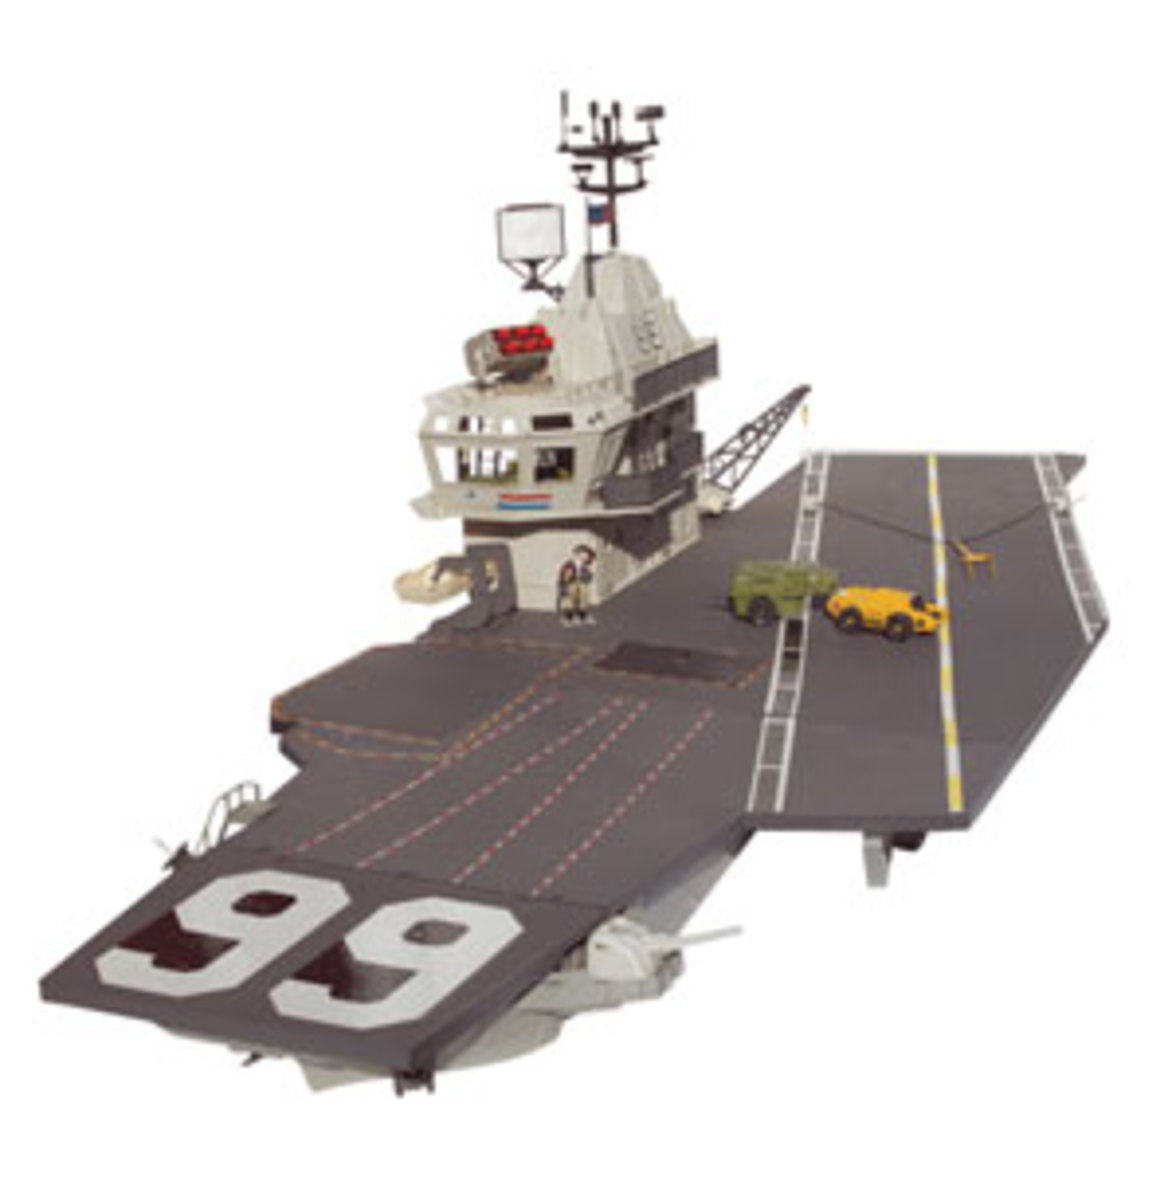 The U.S.S. Flagg Aircraft Carrier – 7 ½' long (bow to stern) – is often referenced by toy magazines as the greatest action figure playset ever created. The carrier, found Mint in Sealed Box, can sell for more than $5,000.